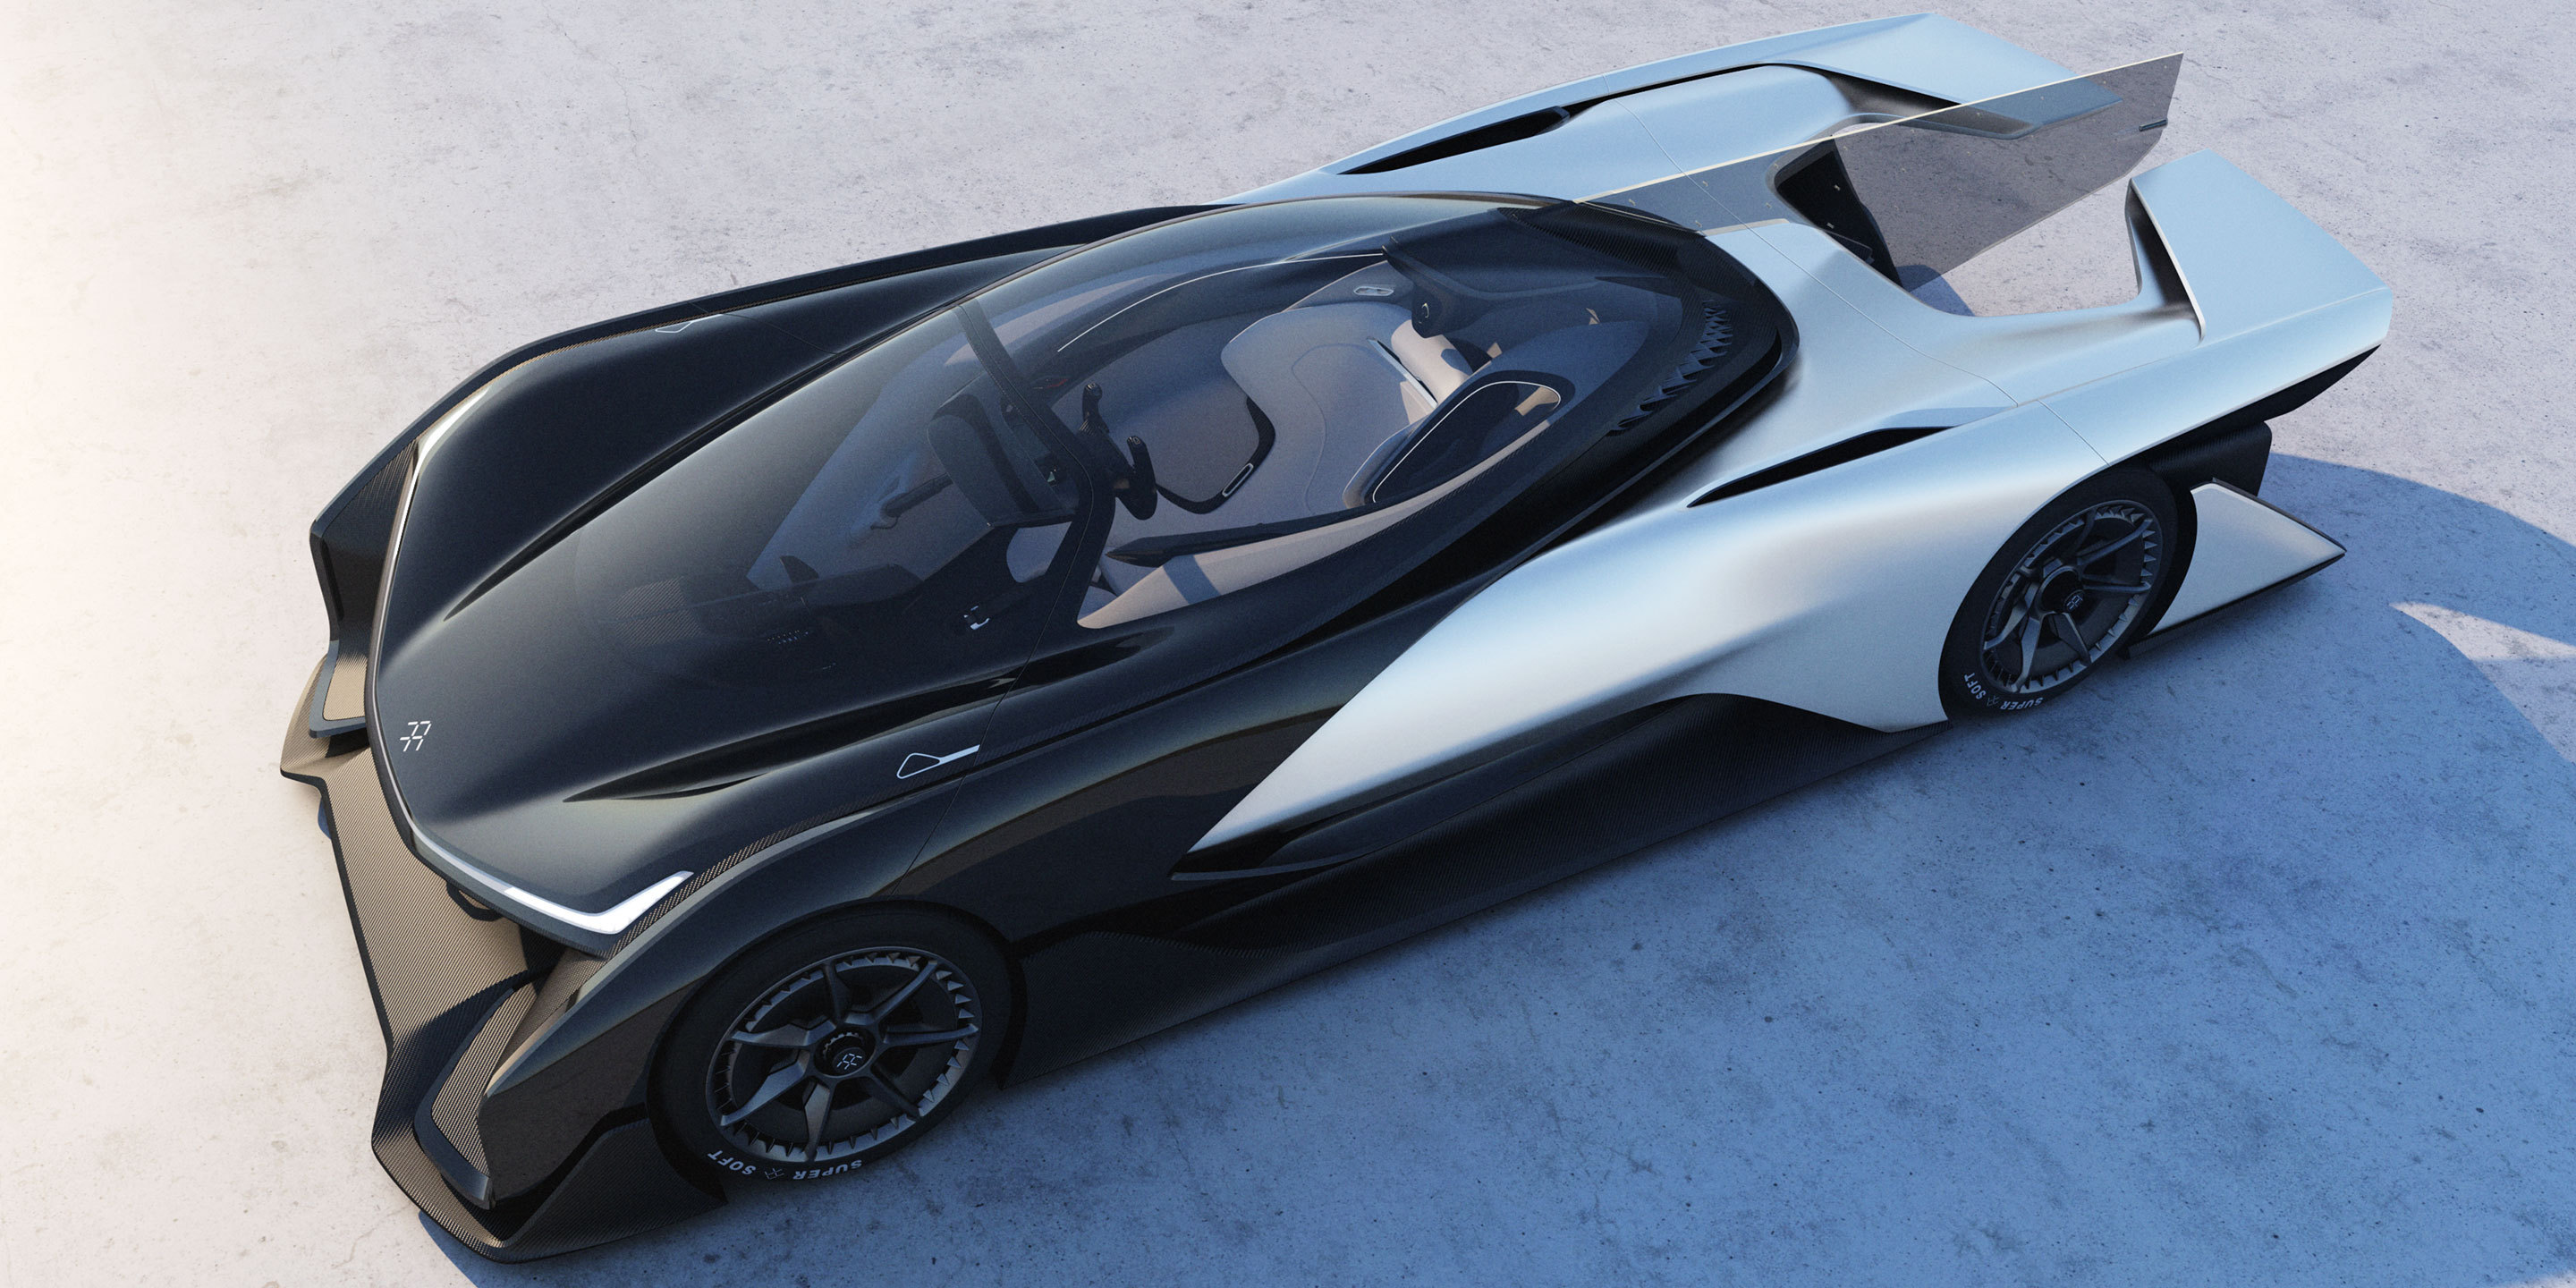 Electric Car Company Faraday Future Deploys Dassault Systemes